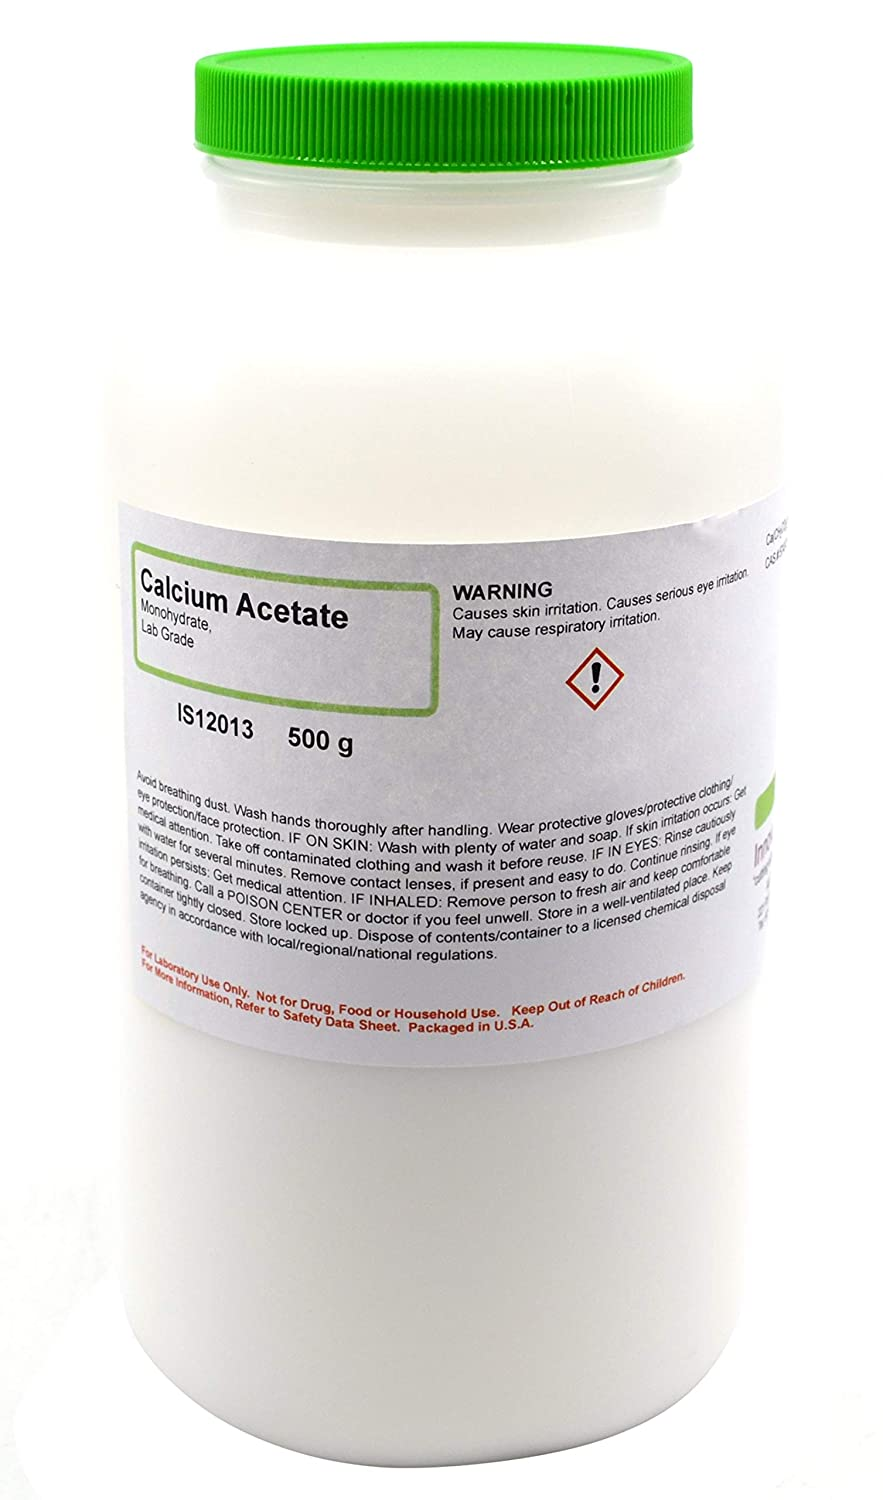 Laboratory-Grade Calcium Acetate Monohydrate, 500g - The Curated Chemical Collection